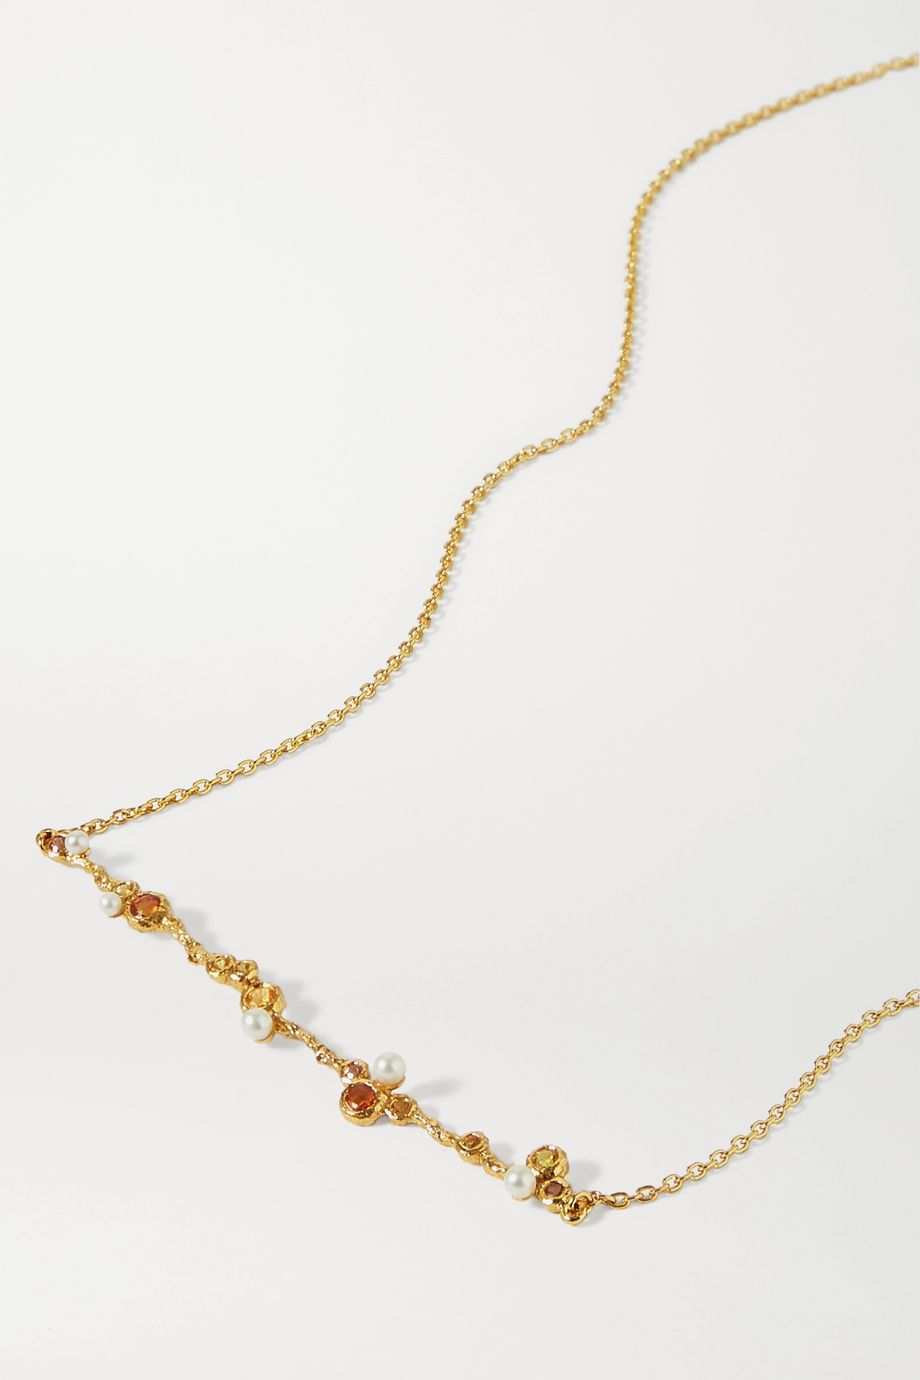 Pacharee Bloom gold-plated, sapphire and pearl necklace